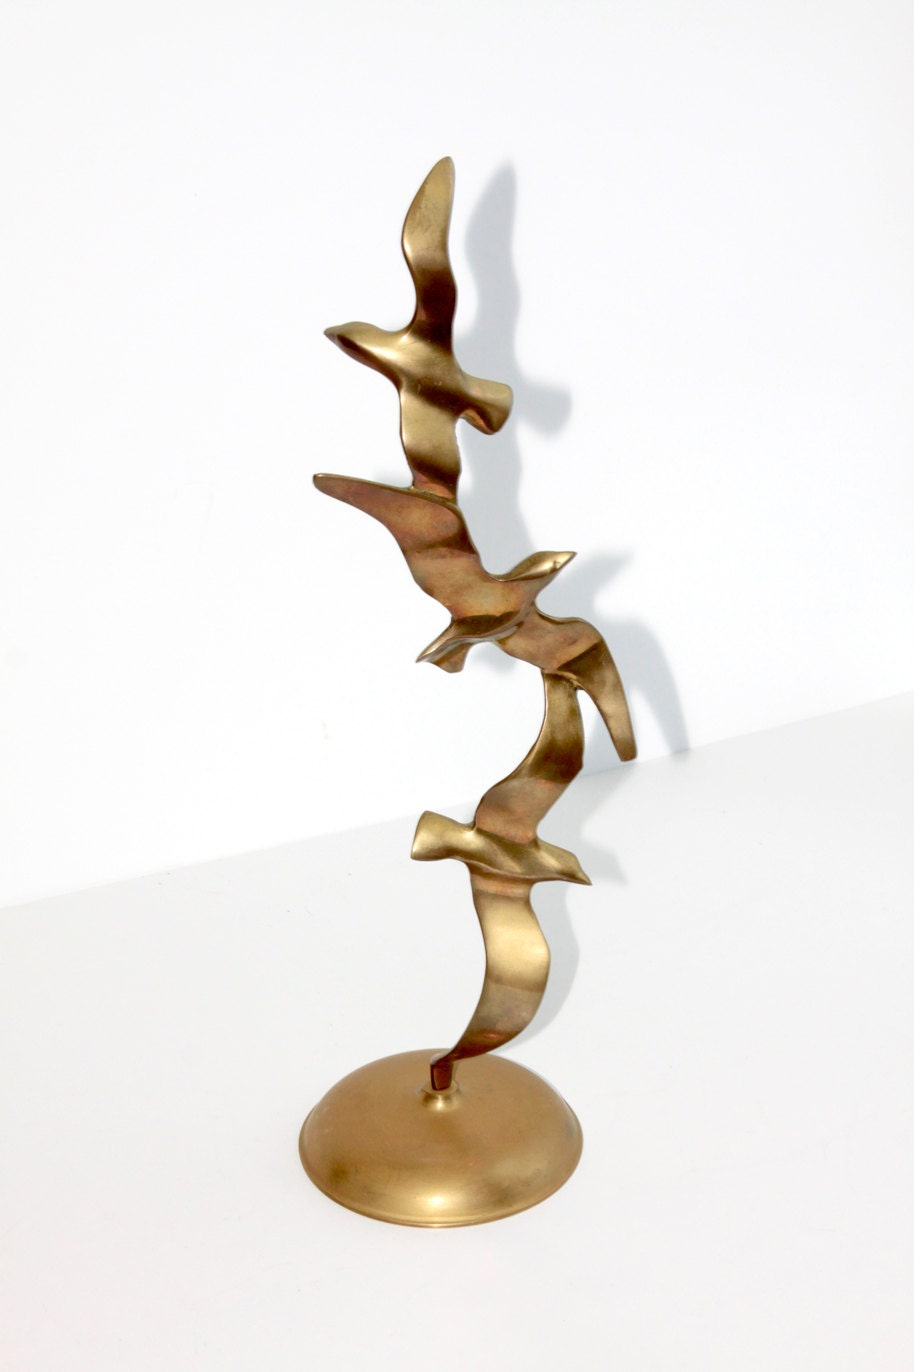 Retro Brass Seagull Sculpture made by Penco - Fleaosophy